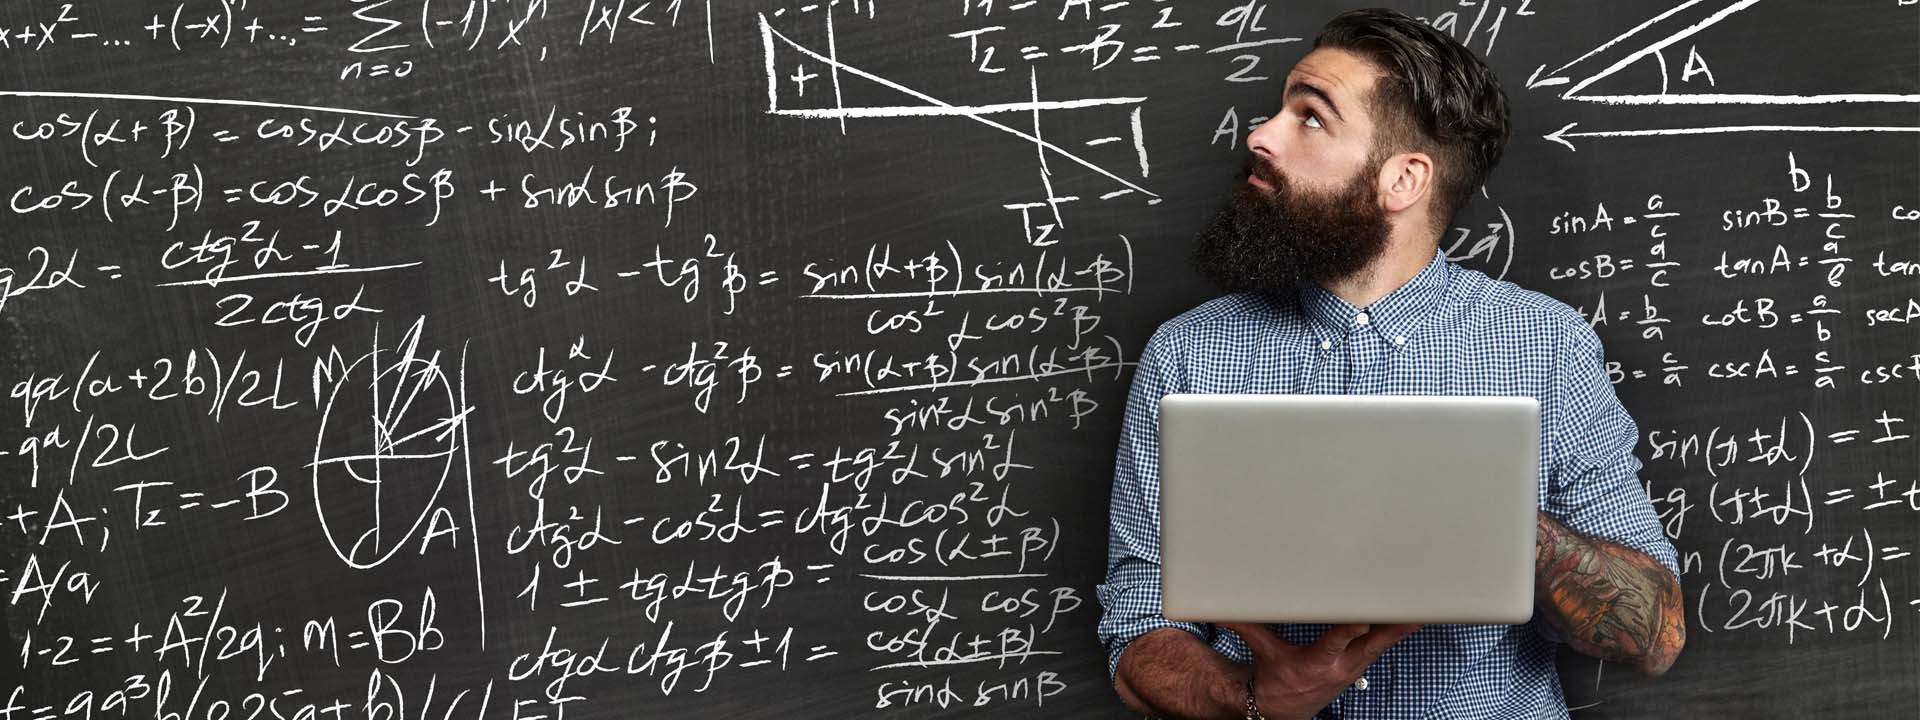 Man looking at blackboard full of equations